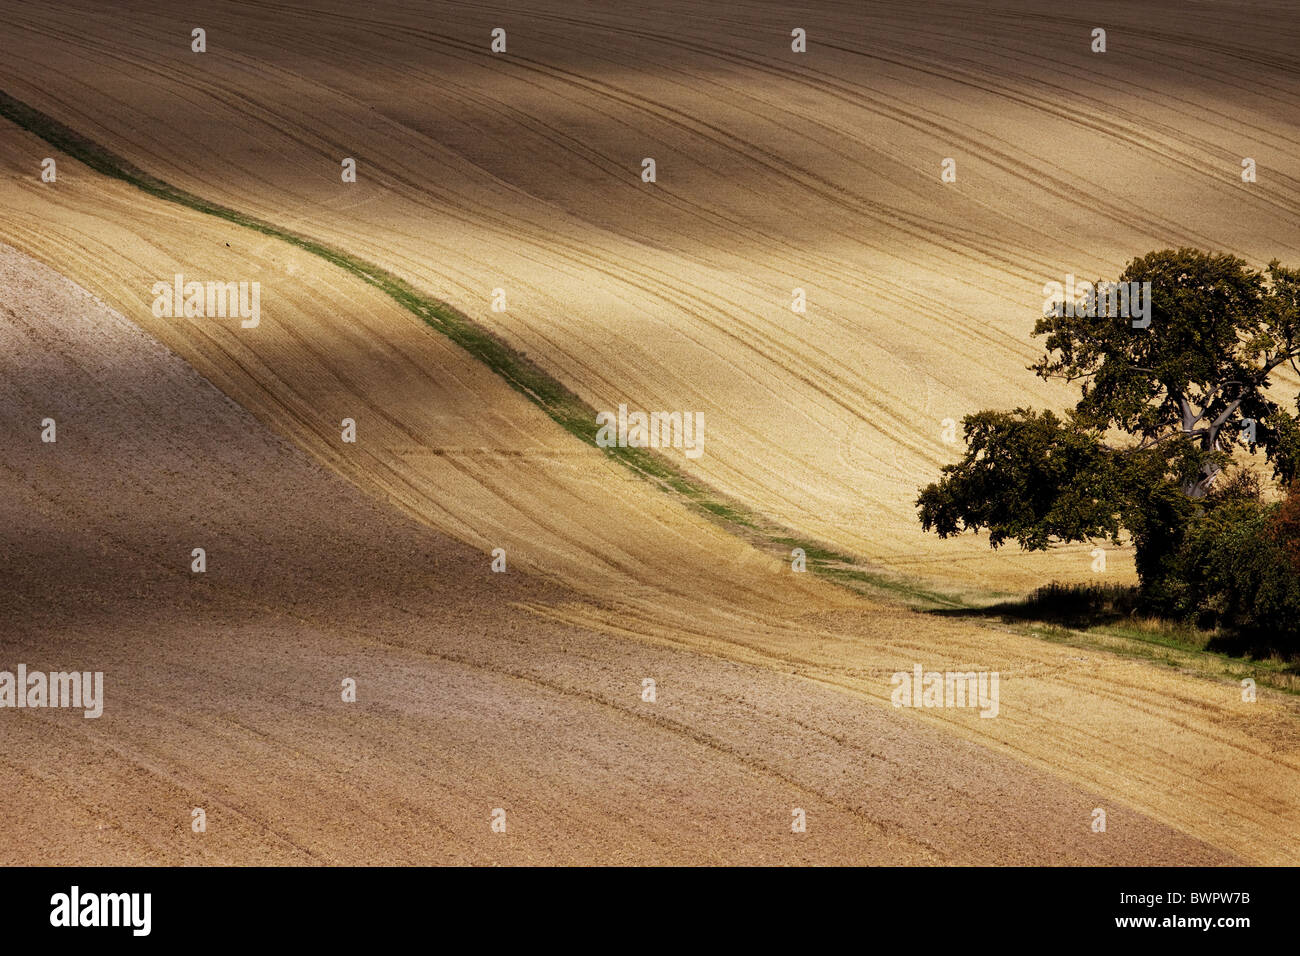 Downland curves field shapes rolling - Stock Image